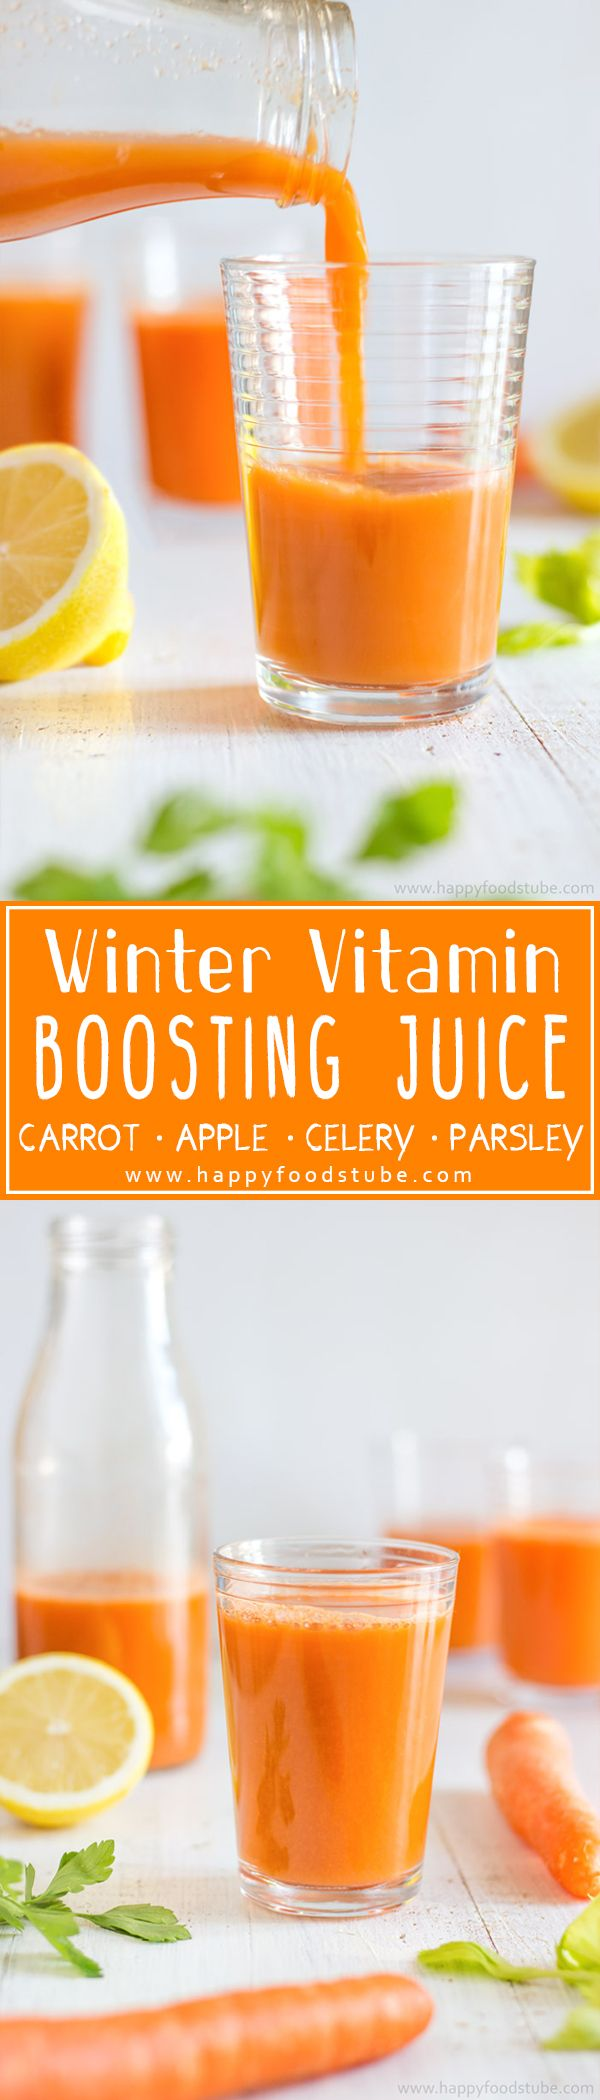 Winter Vitamin Boosting Juice will help you stay healthy throughout cold season! It's homemade, rich in Vitamin C & ready in 5 minutes! Only 5 ingredients - carrot, apple, celery and parsley | happyfoodstube.com